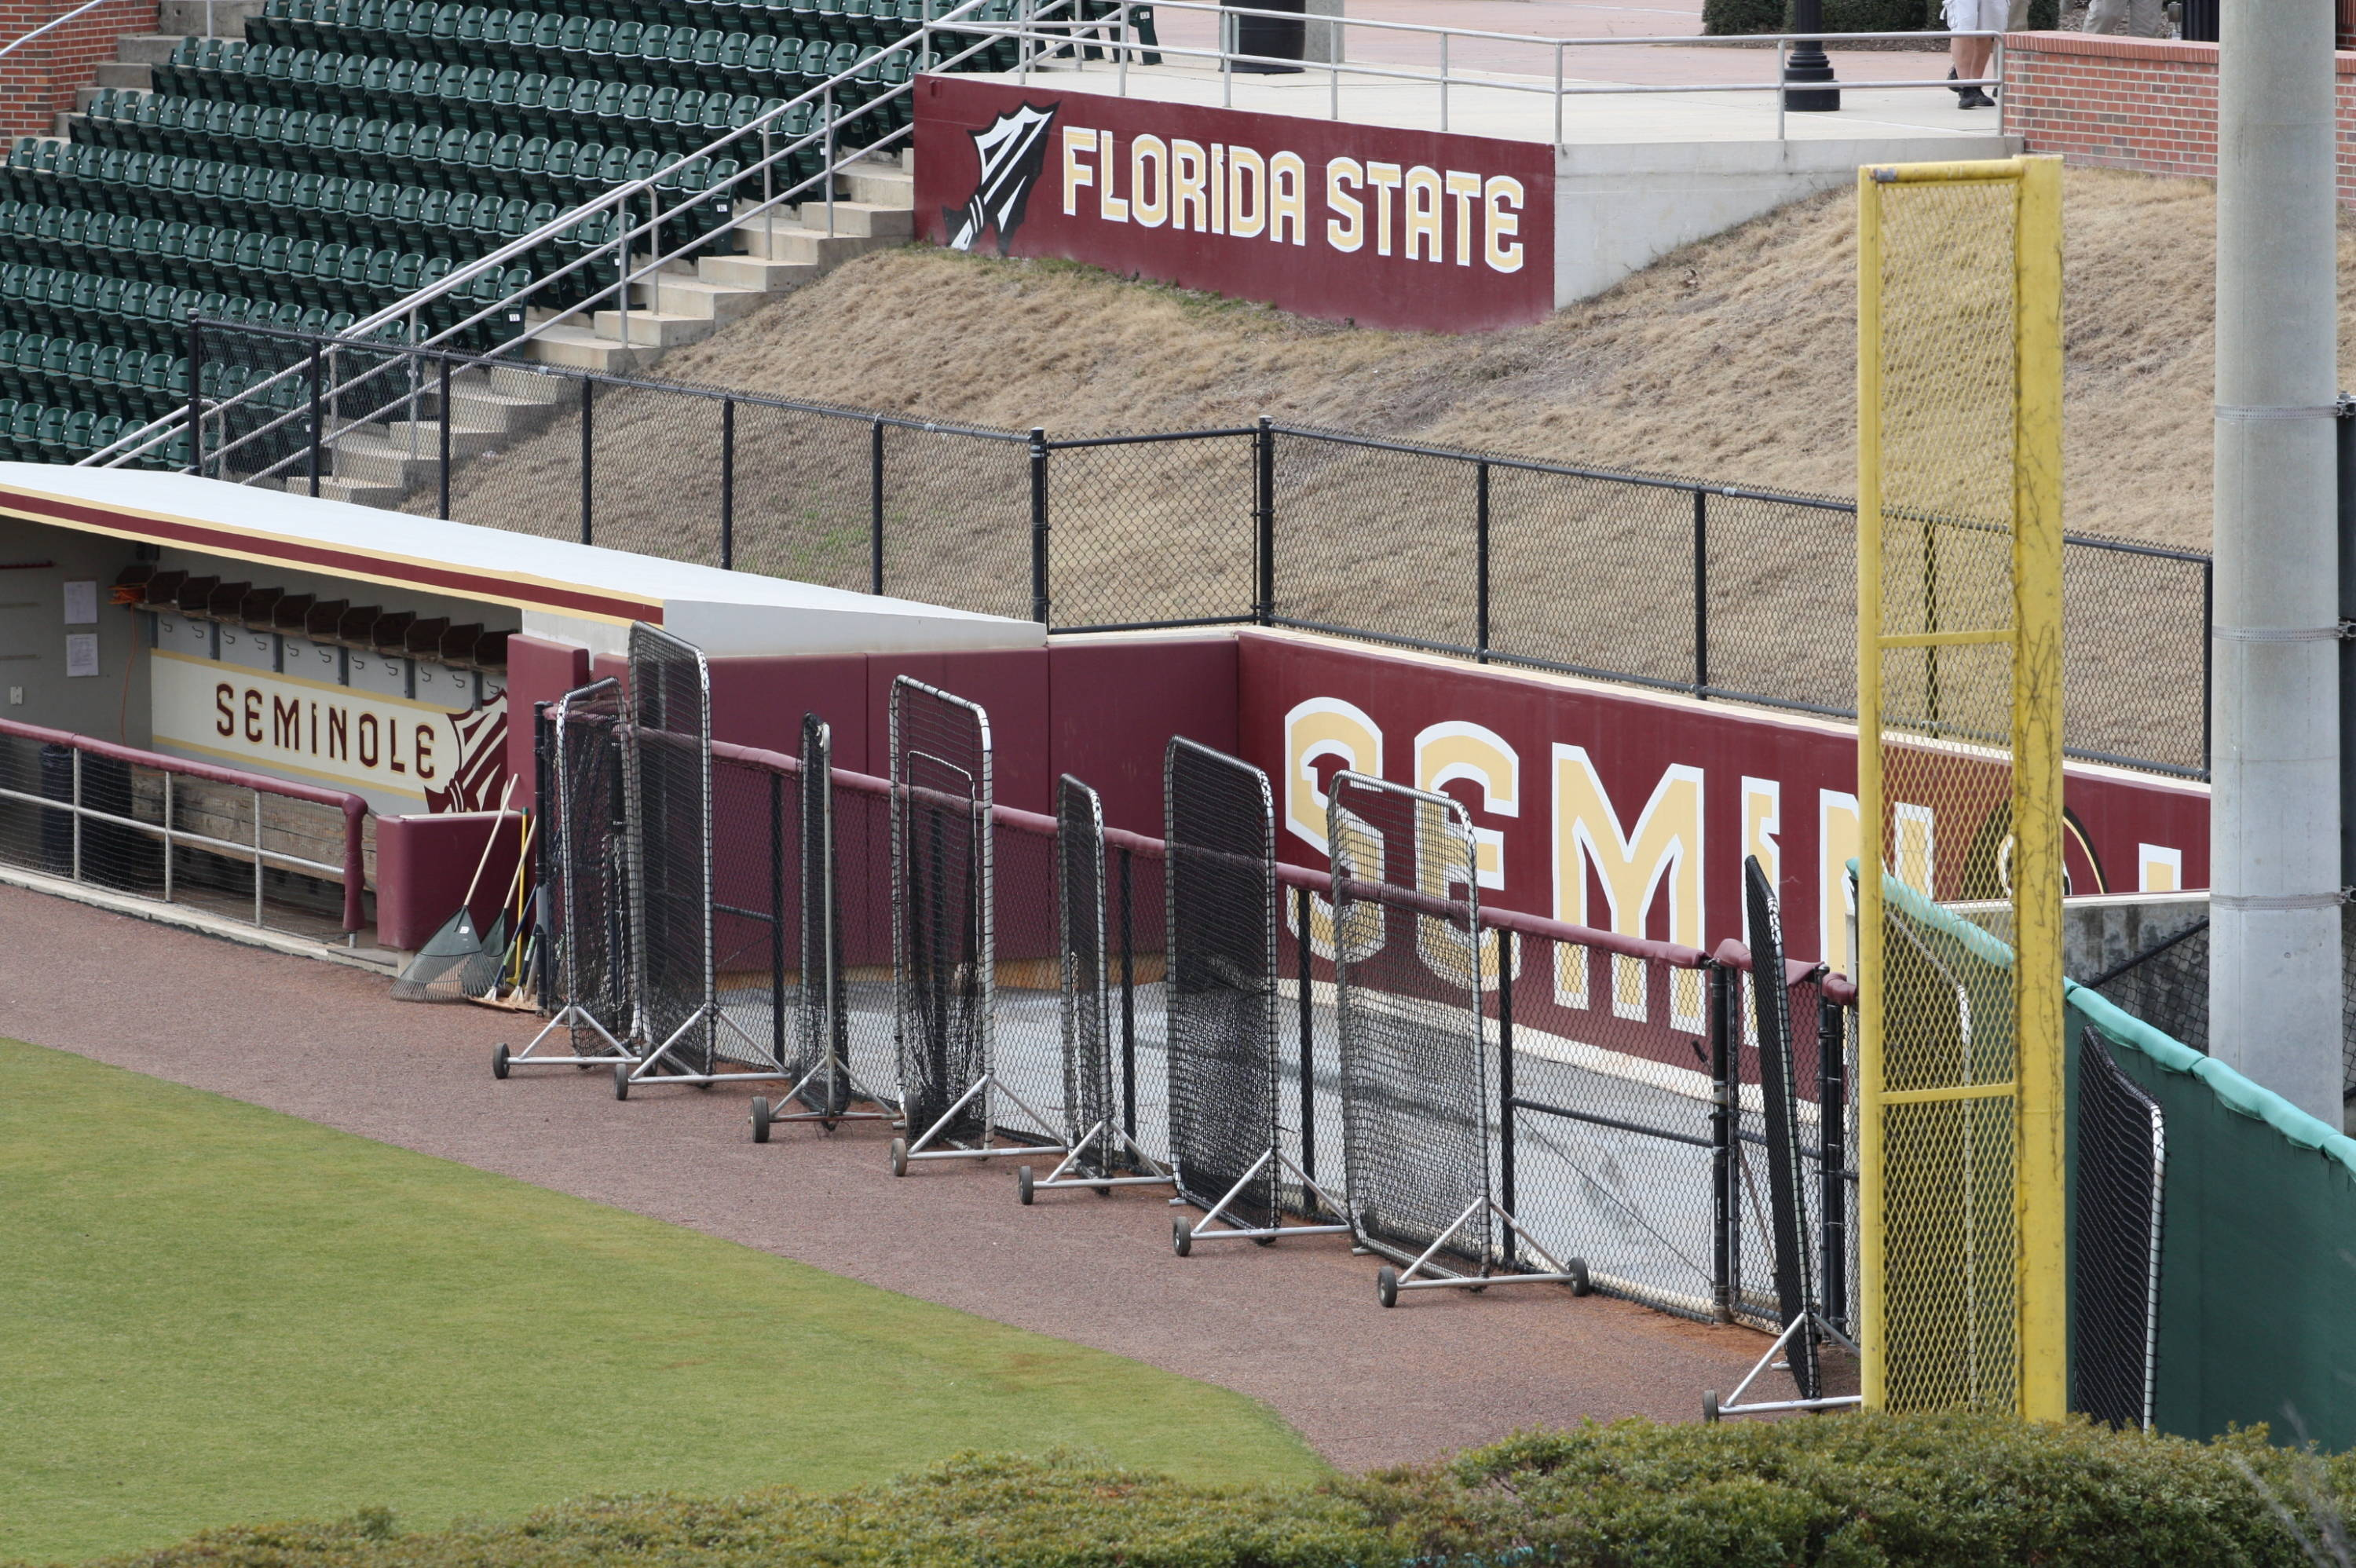 A view of the visiting bullpen